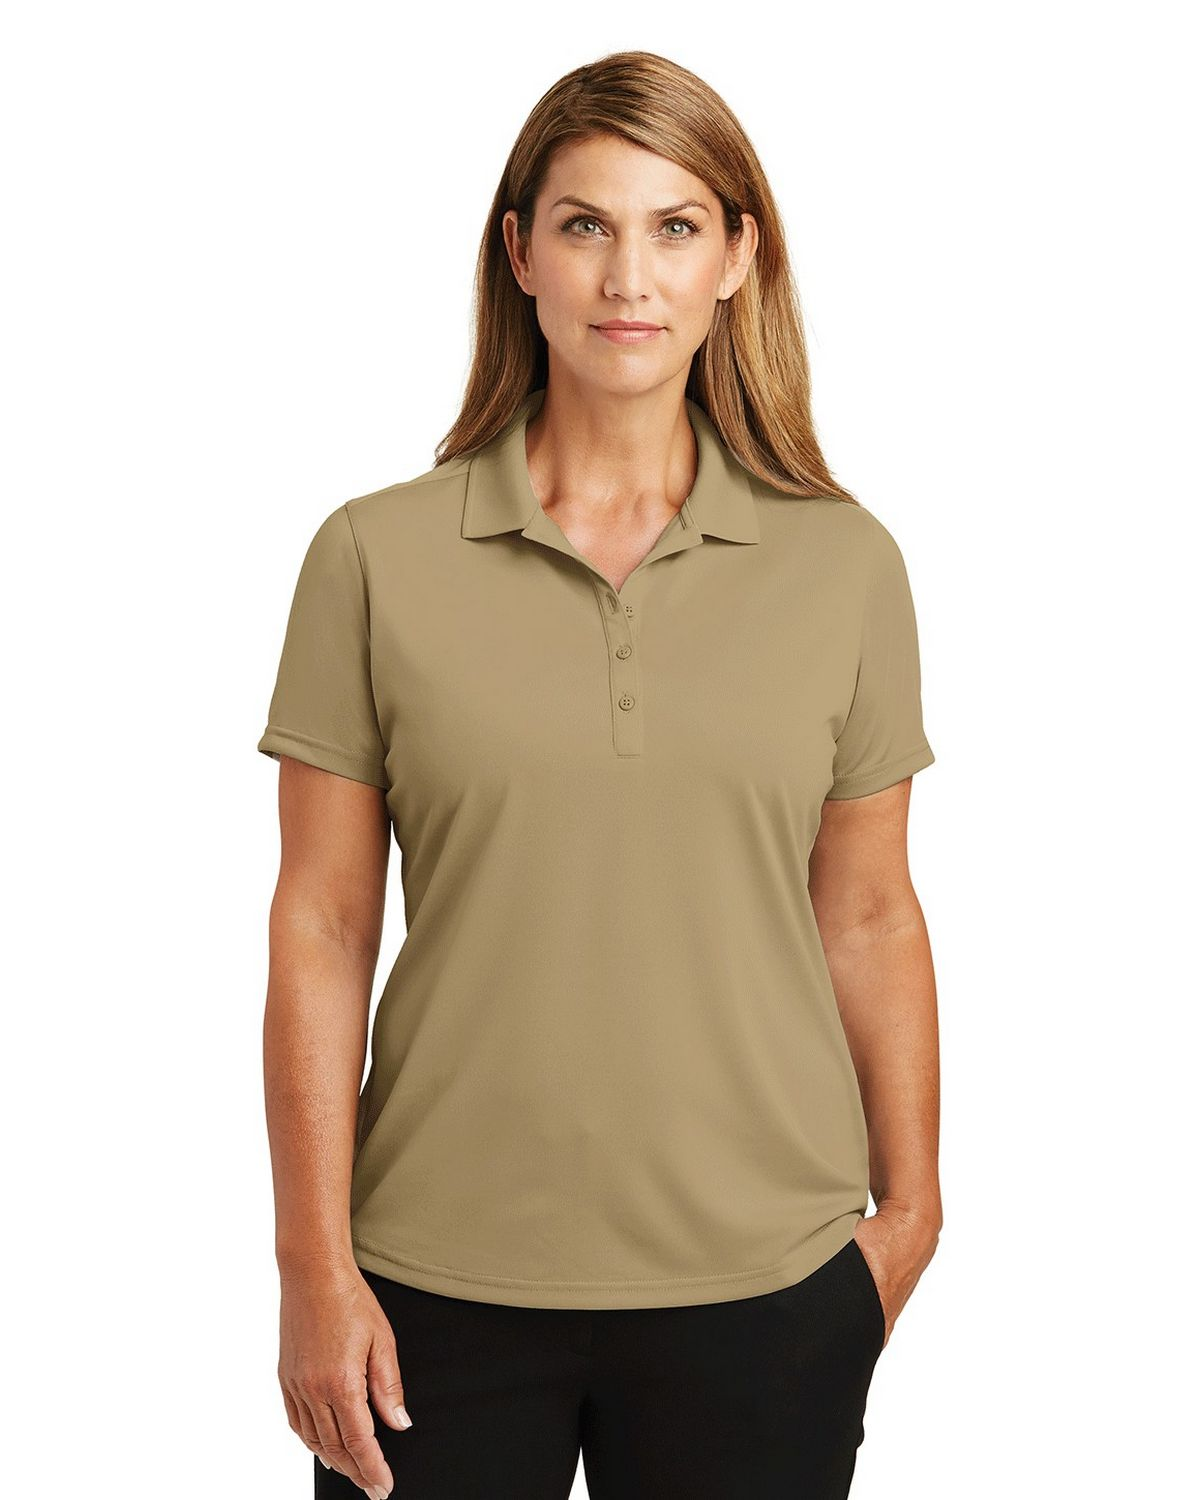 Cornerstone CS419 Ladies Select Lightweight Snag-Proof Polo